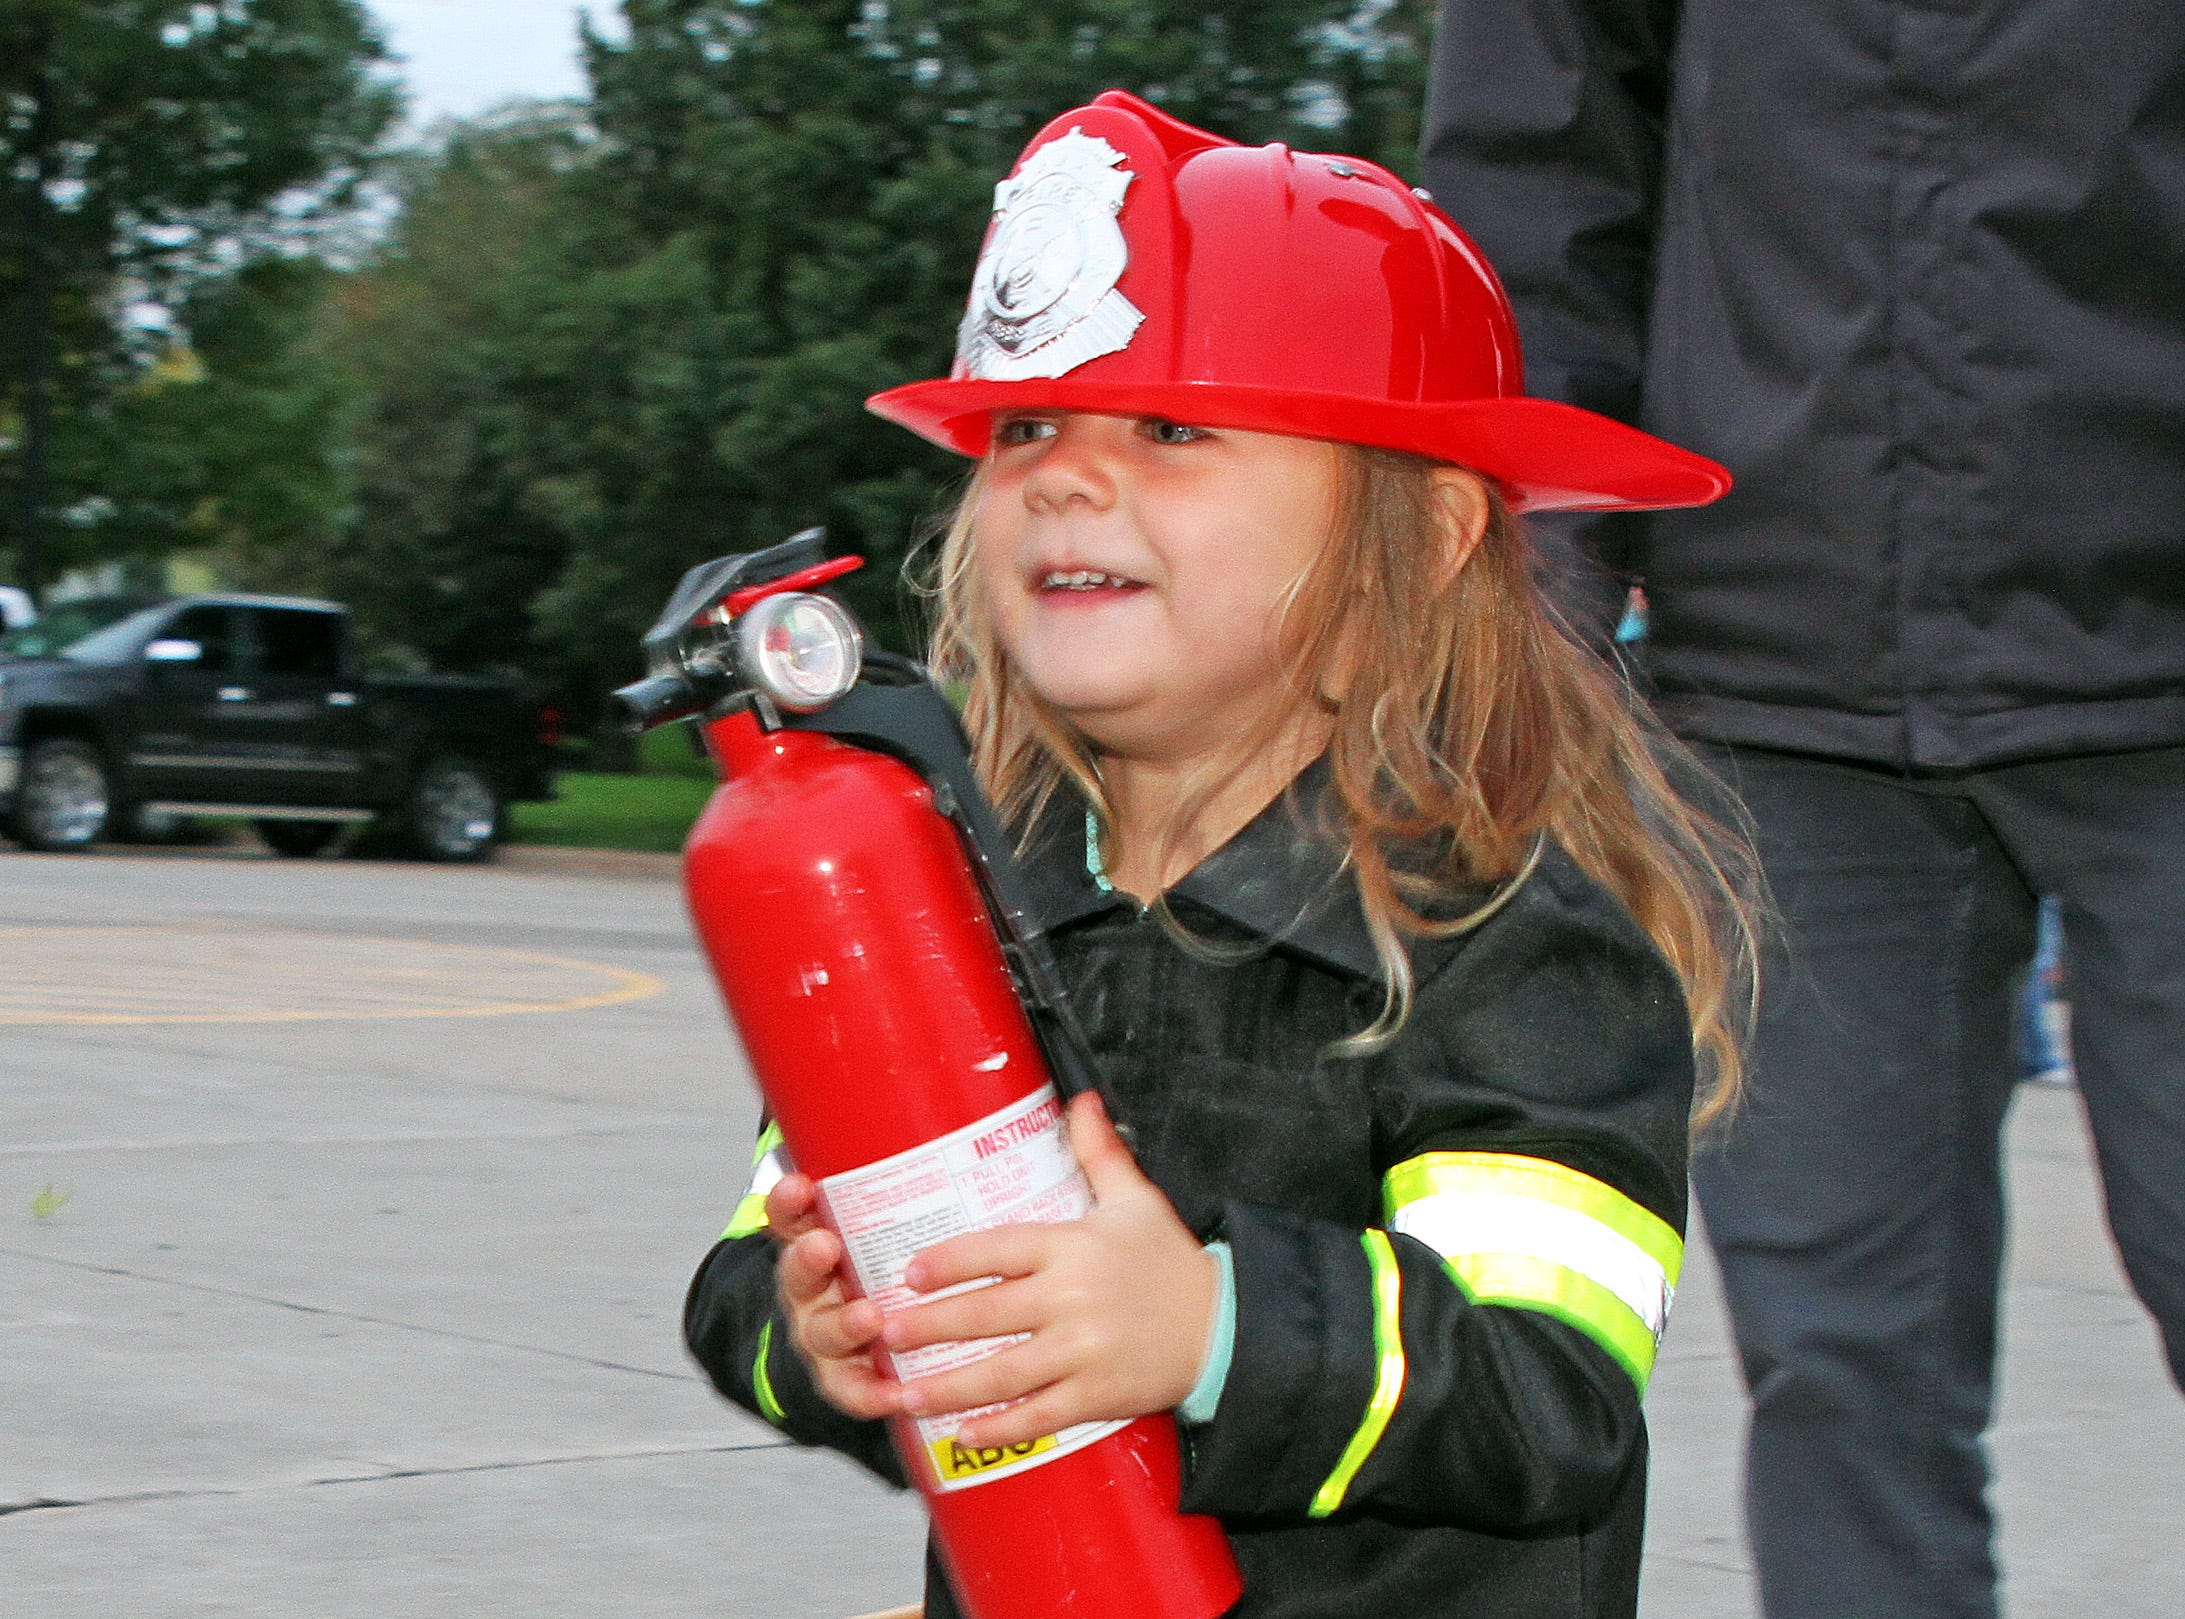 Adelyn Gervais, 3, of Ankeny carries a fire extinguisher at the Kids' Firefighter Challenge during the Ankeny Fire Department's Fire Prevention Week Open House on Wednesday, Oct. 10, 2018 at Fire Station #1, 120 N.W. Ash Dr. in Ankeny.